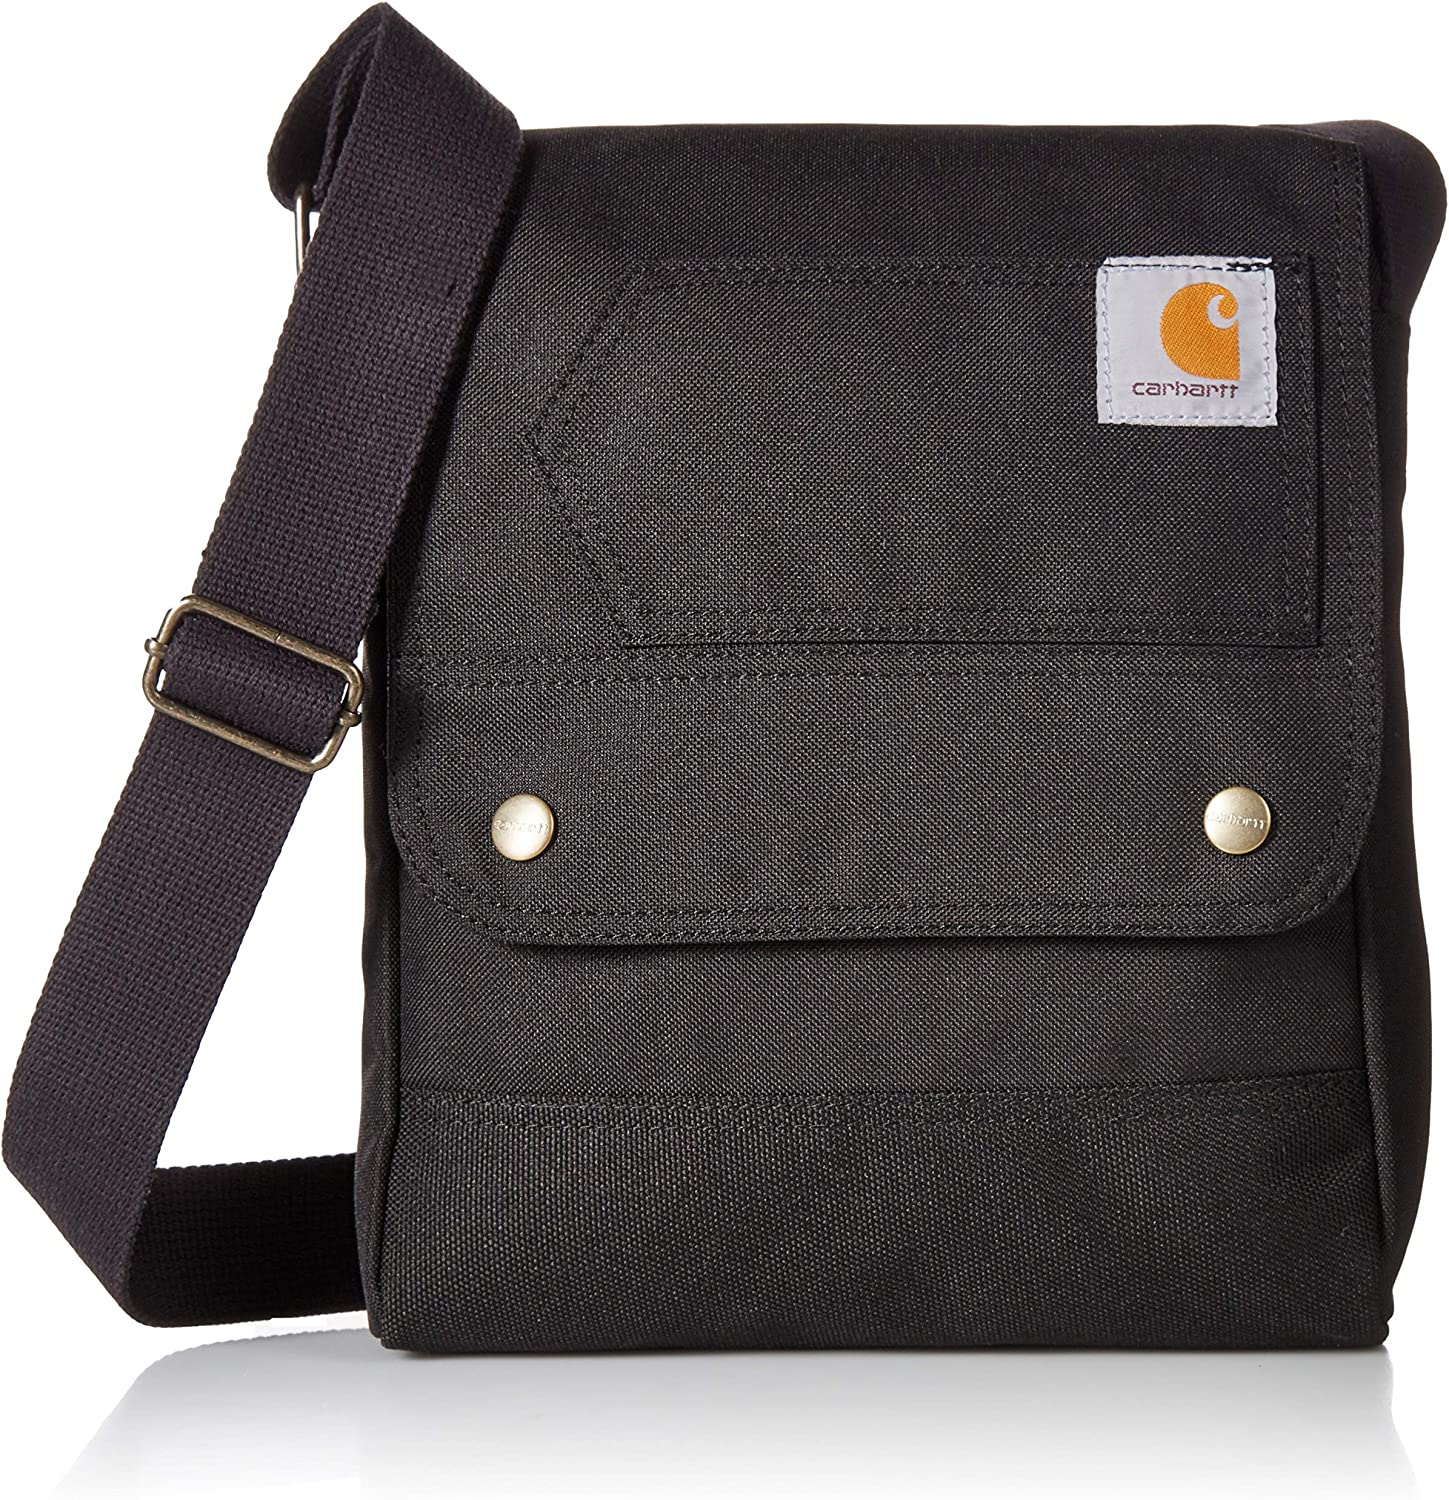 Carhartt Legacy Women's Cross Body Carry All, Black